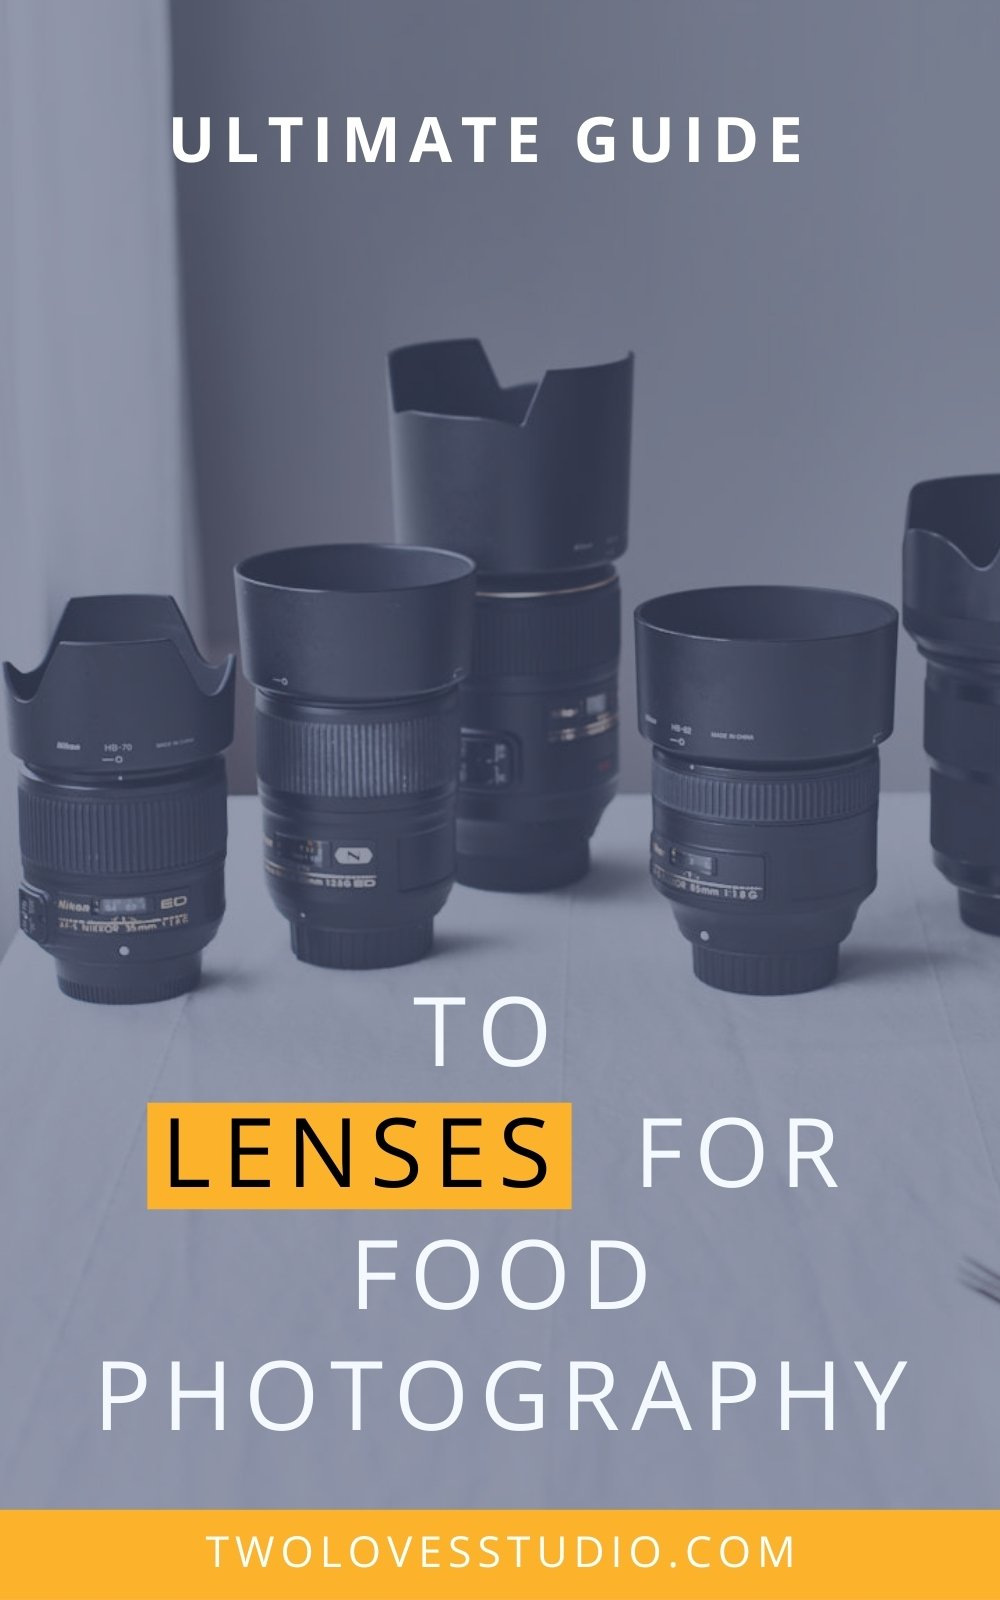 5 food photography lenses sitting on a table with the text ultimate guide to lenses for food photography